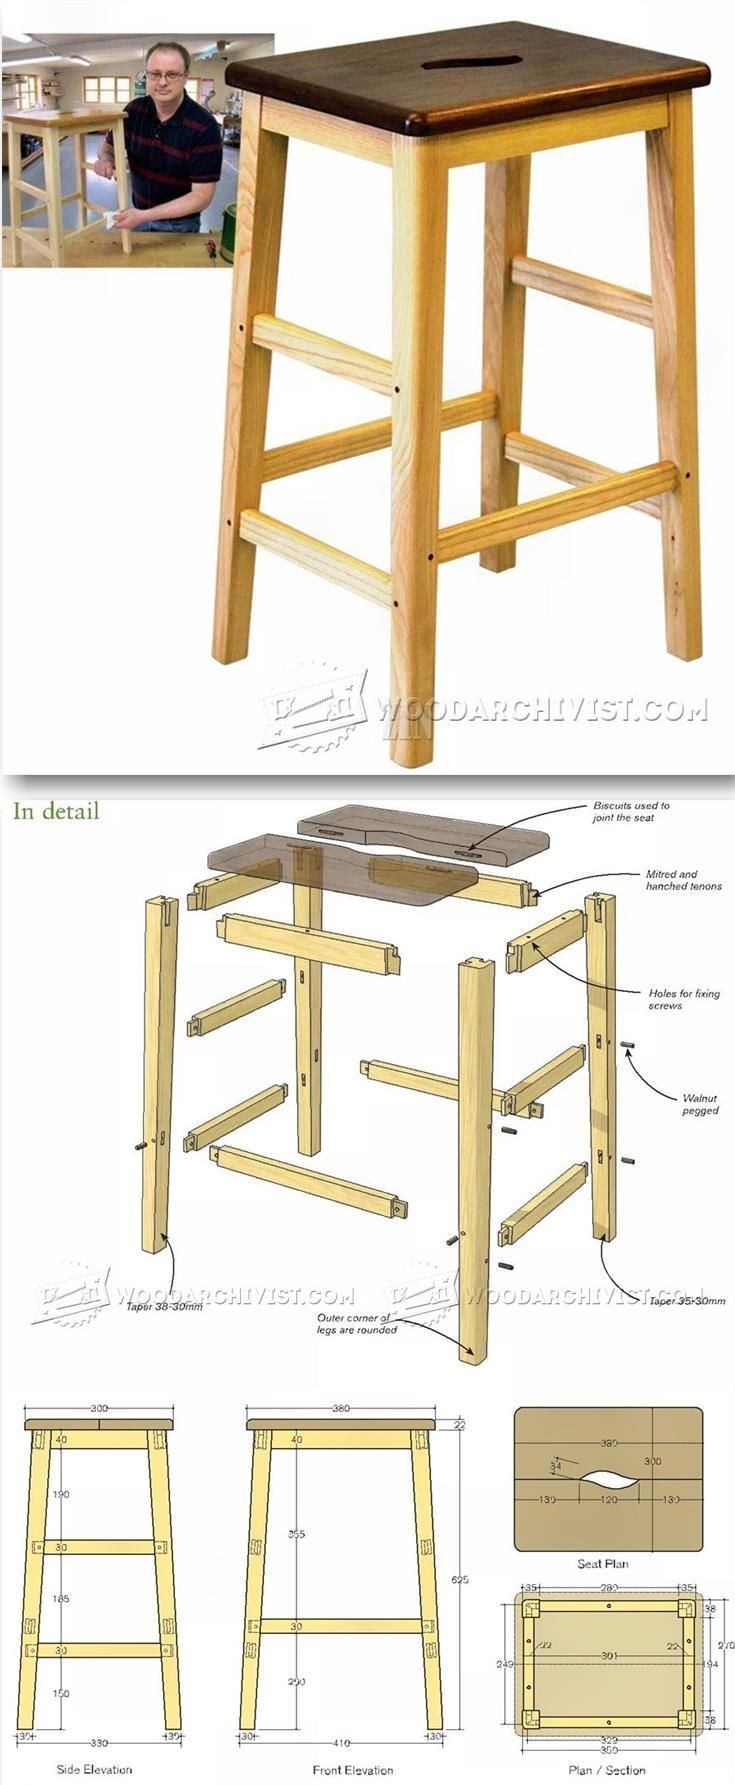 Awesome bench stool plans furniture plans and projects - Progetti mobili fai da te ...